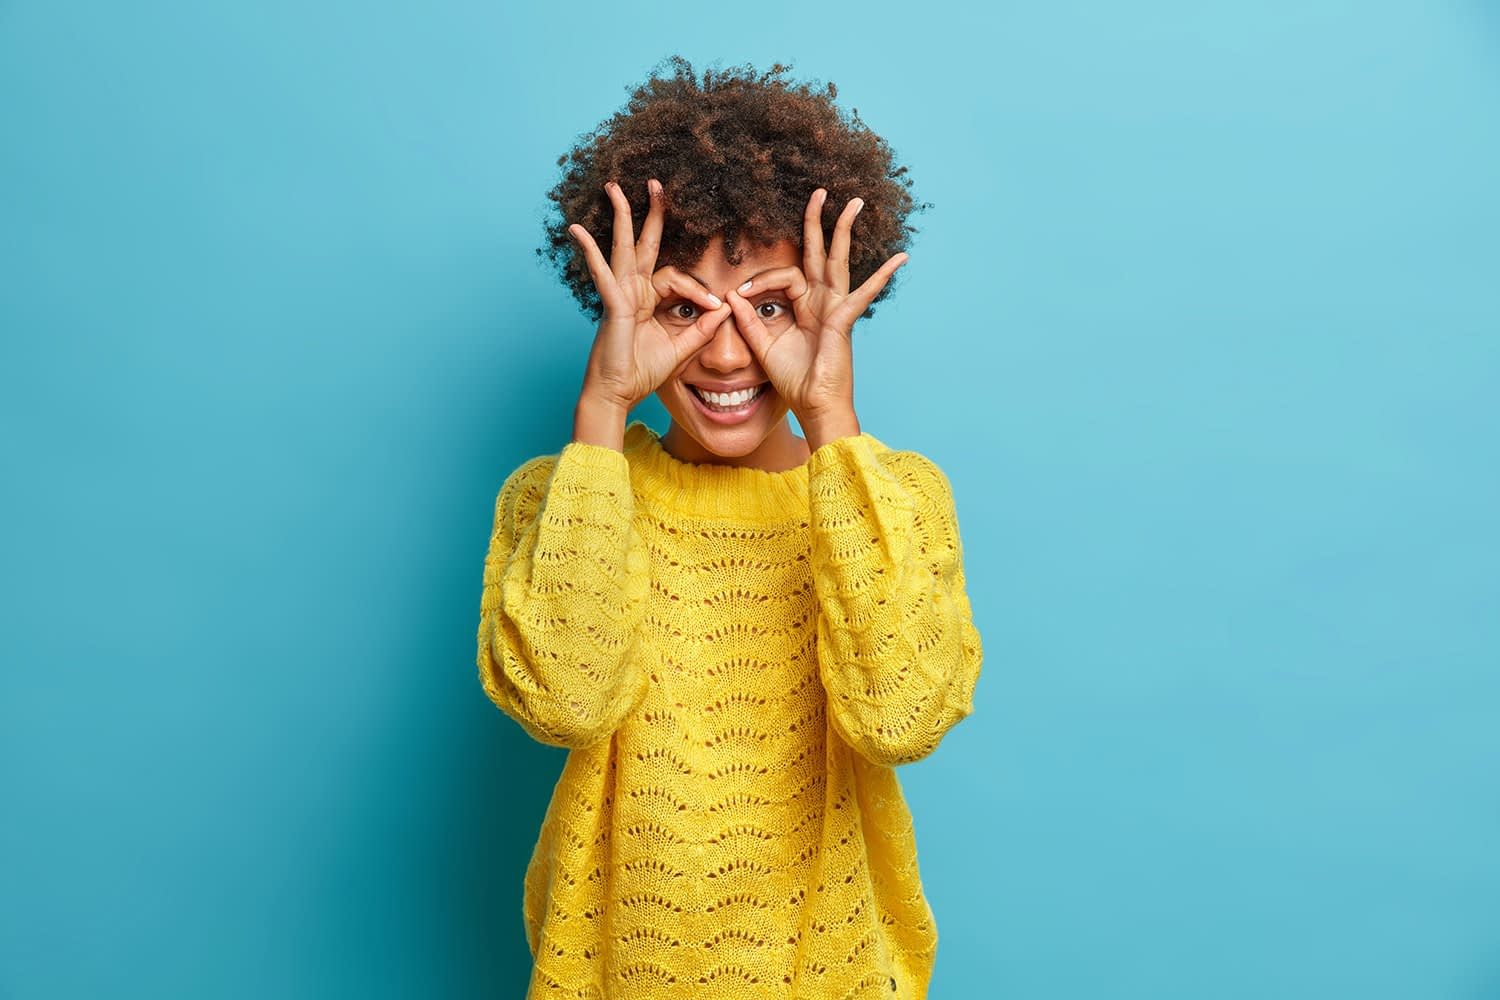 Playful curly haired woman in a yellow sweater making finger glasses with a smile.